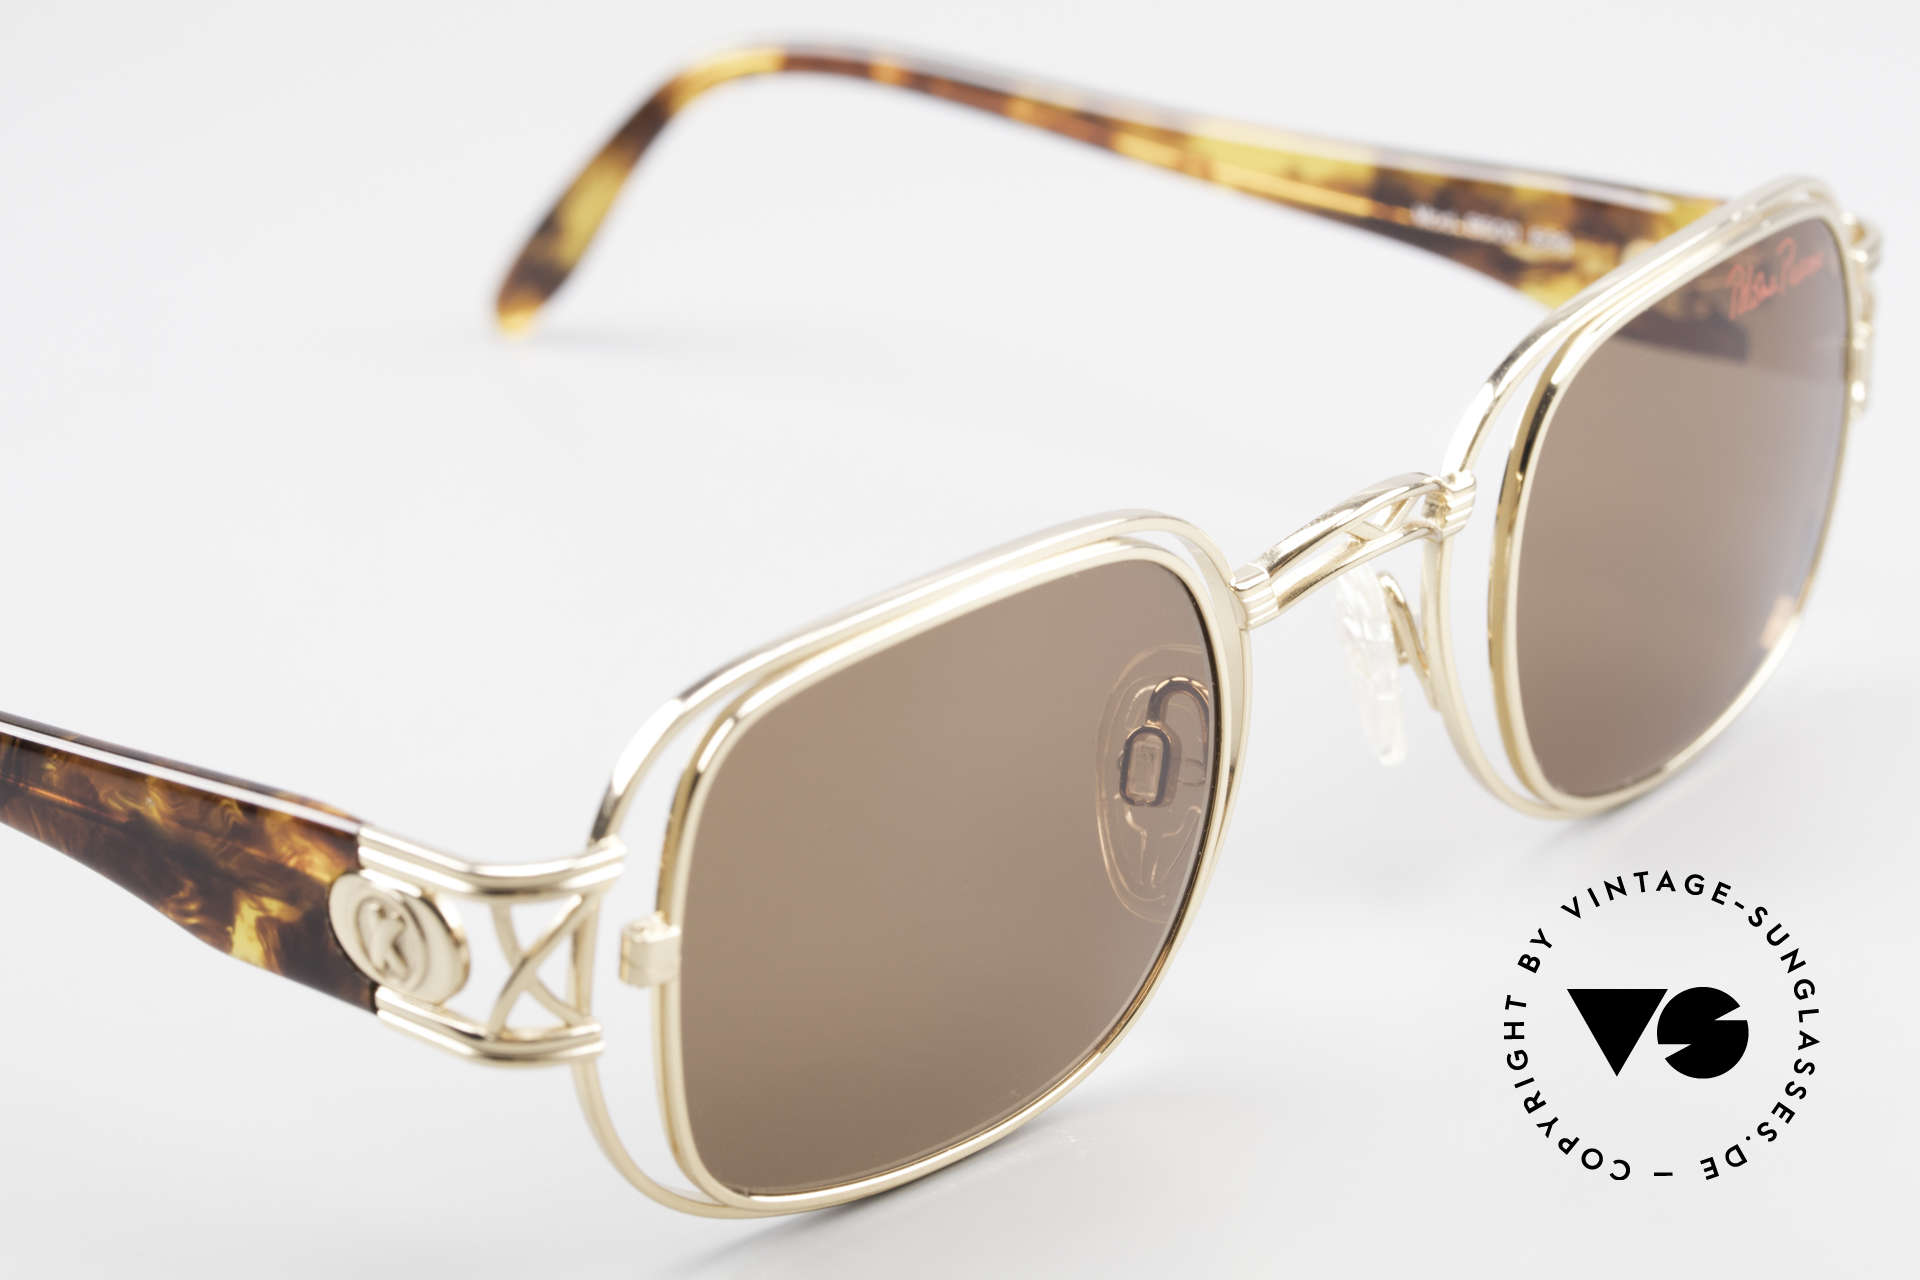 Paloma Picasso 8600 90's Vintage Ladies Sunglasses, sun lenses (100% UV) and with original Picasso case, Made for Women